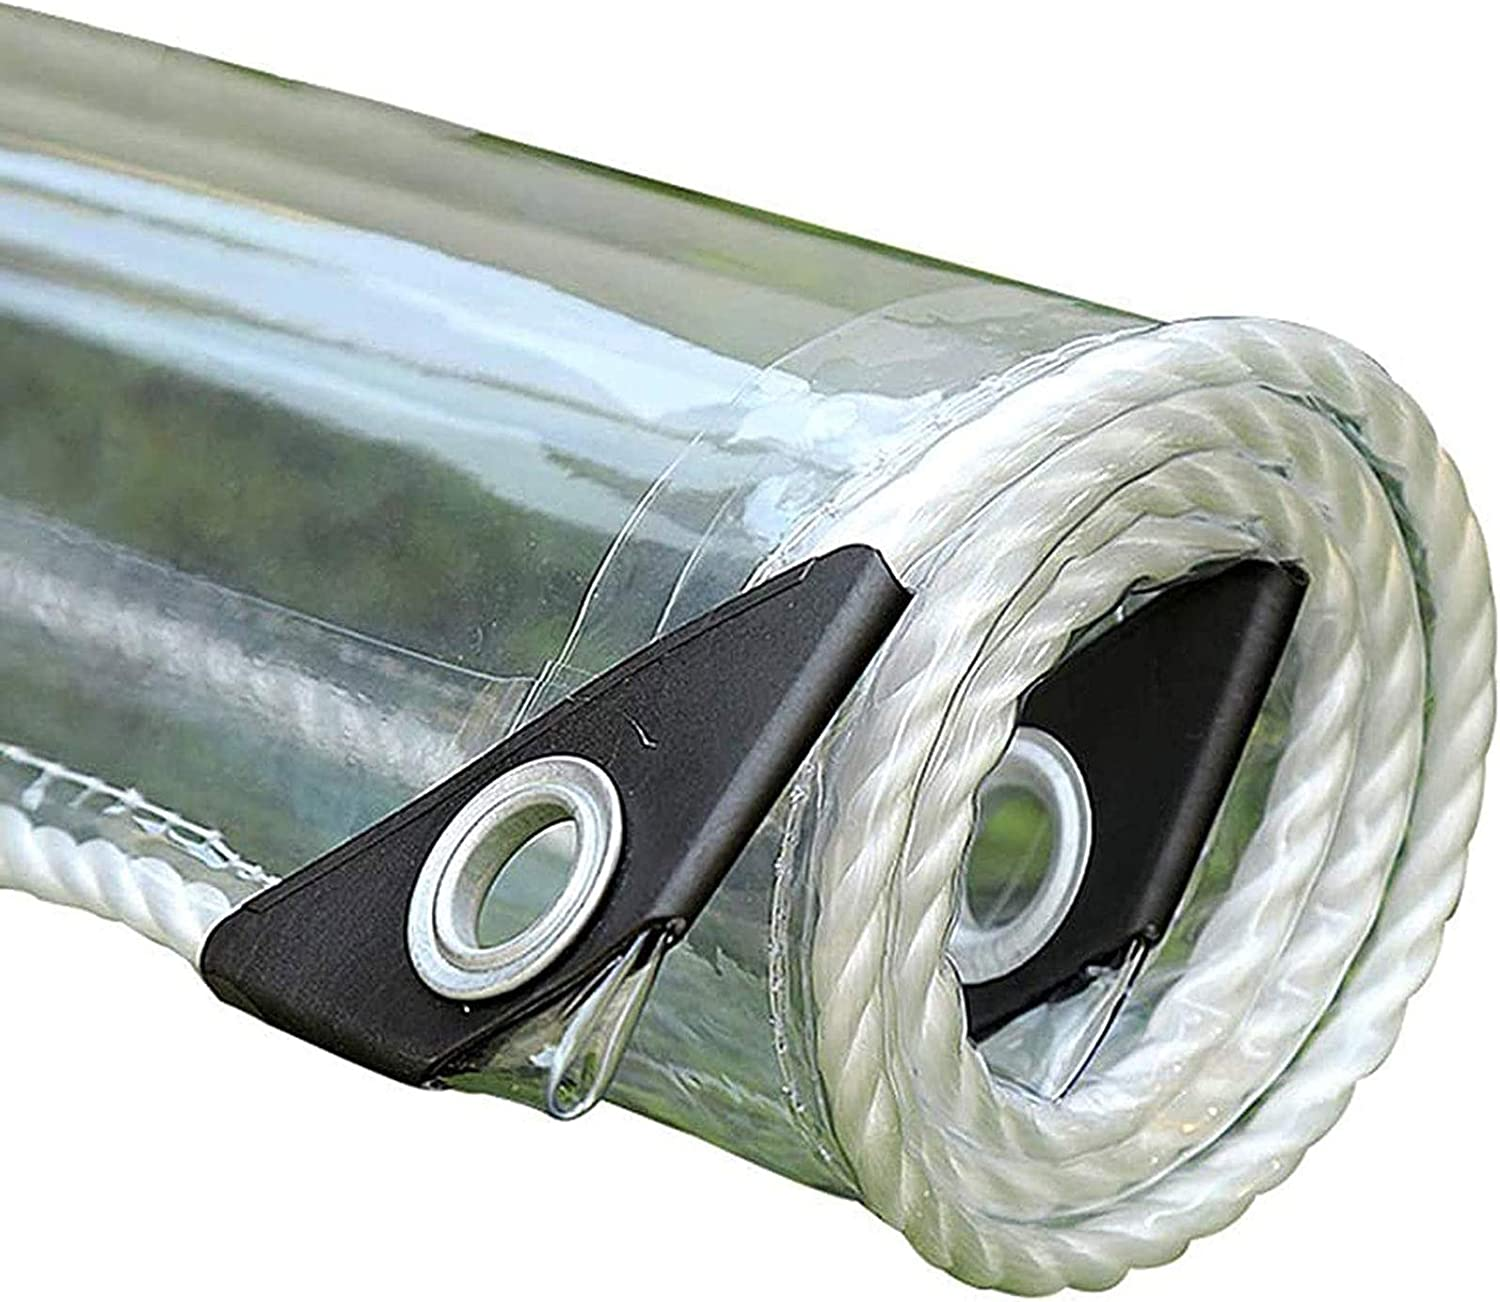 FOGUO Long Beach Mall Free shipping on posting reviews Transparent Tarp Waterproof Tarps with Clea Grommet3x10F